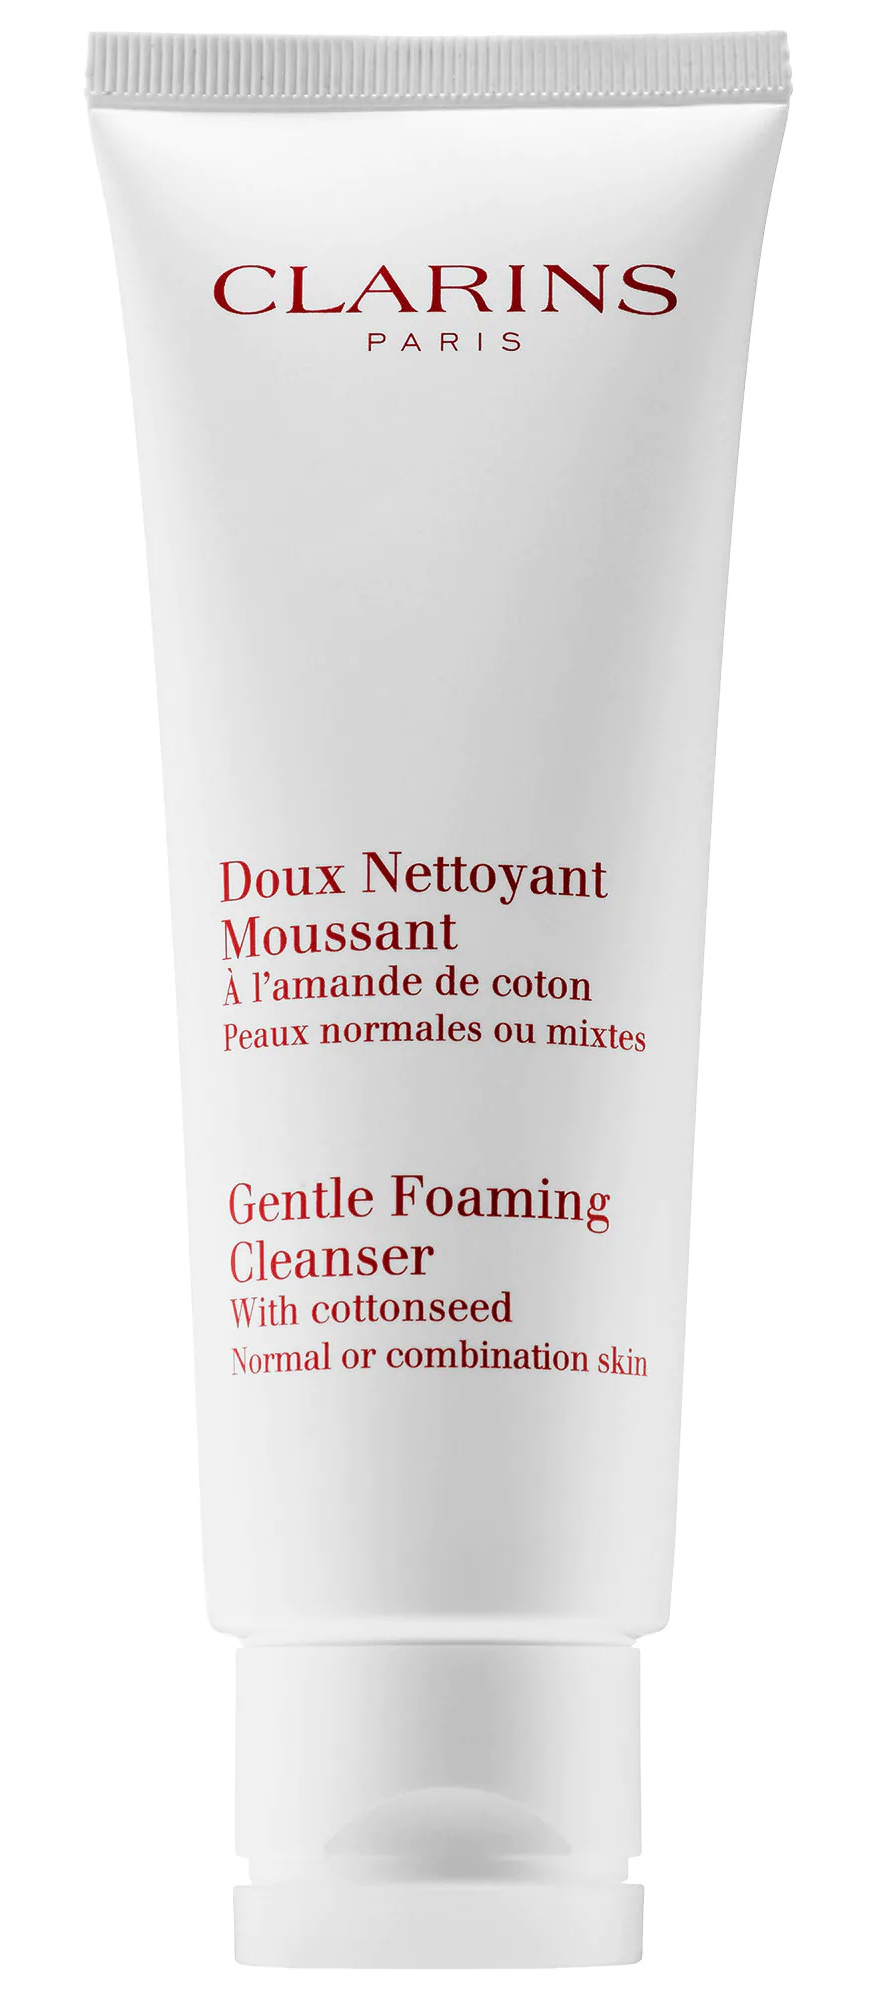 "Clarins Gentle Foaming Cleanser With Cottonseed ""Normal/Combination Skin"""